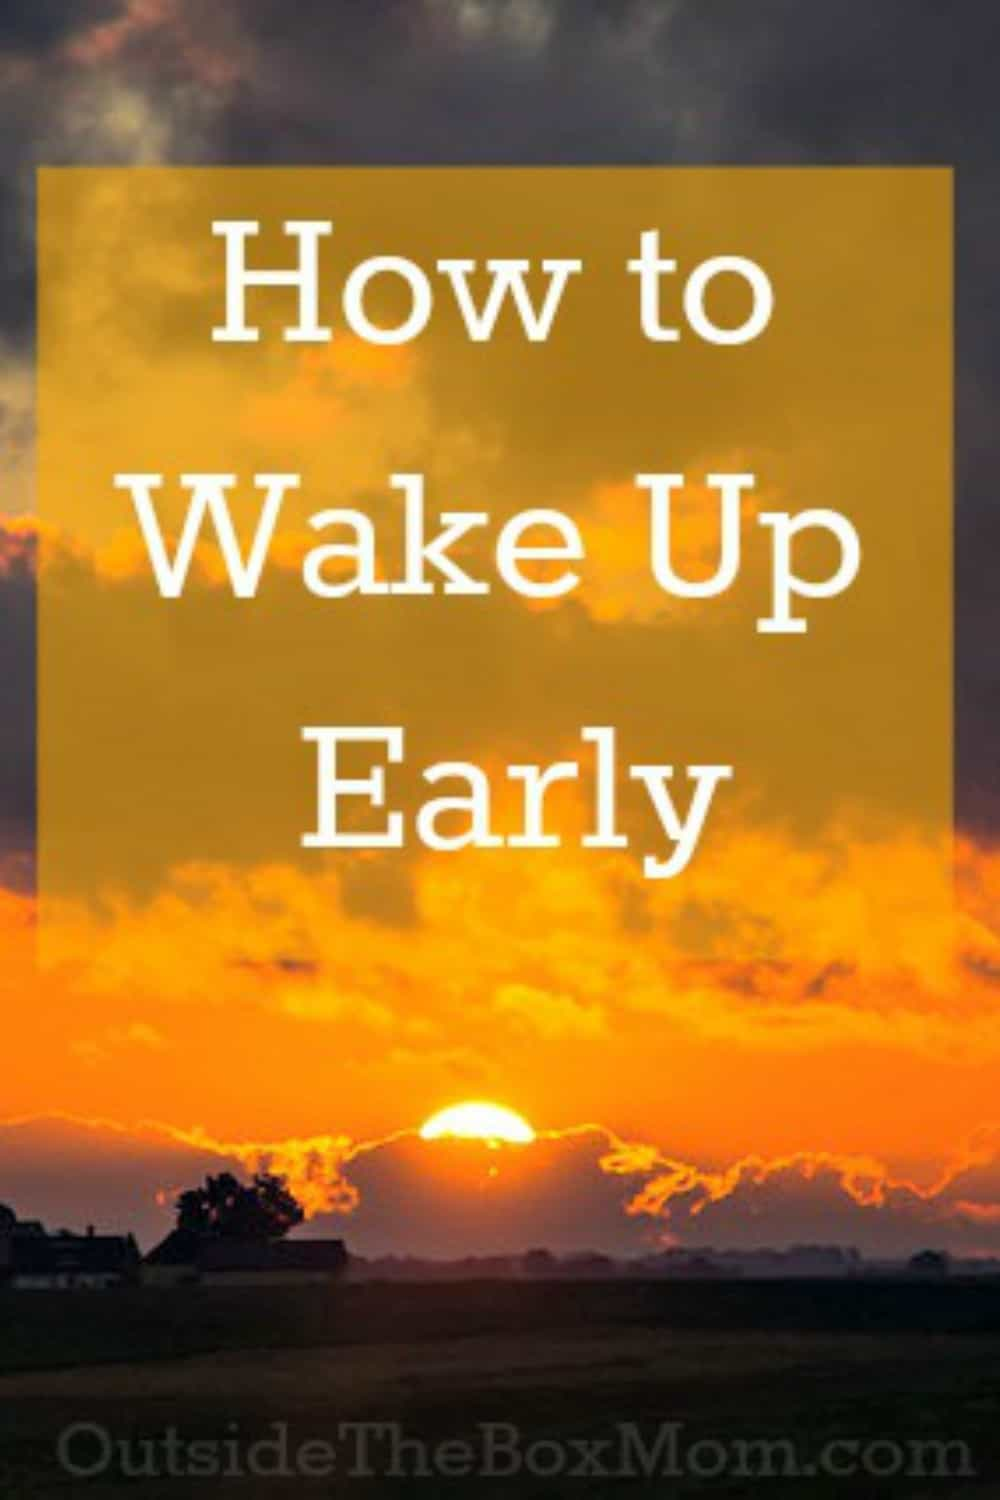 Many don't know how waking up early can jump start your day, help you get more done, and give you a sense of accomplishment. This is Day 1 of our31 Ways to Get More Doneseries. To read all the posts in order,visit theintroduction postto see the outline for the whole series. Waking up earlier is …